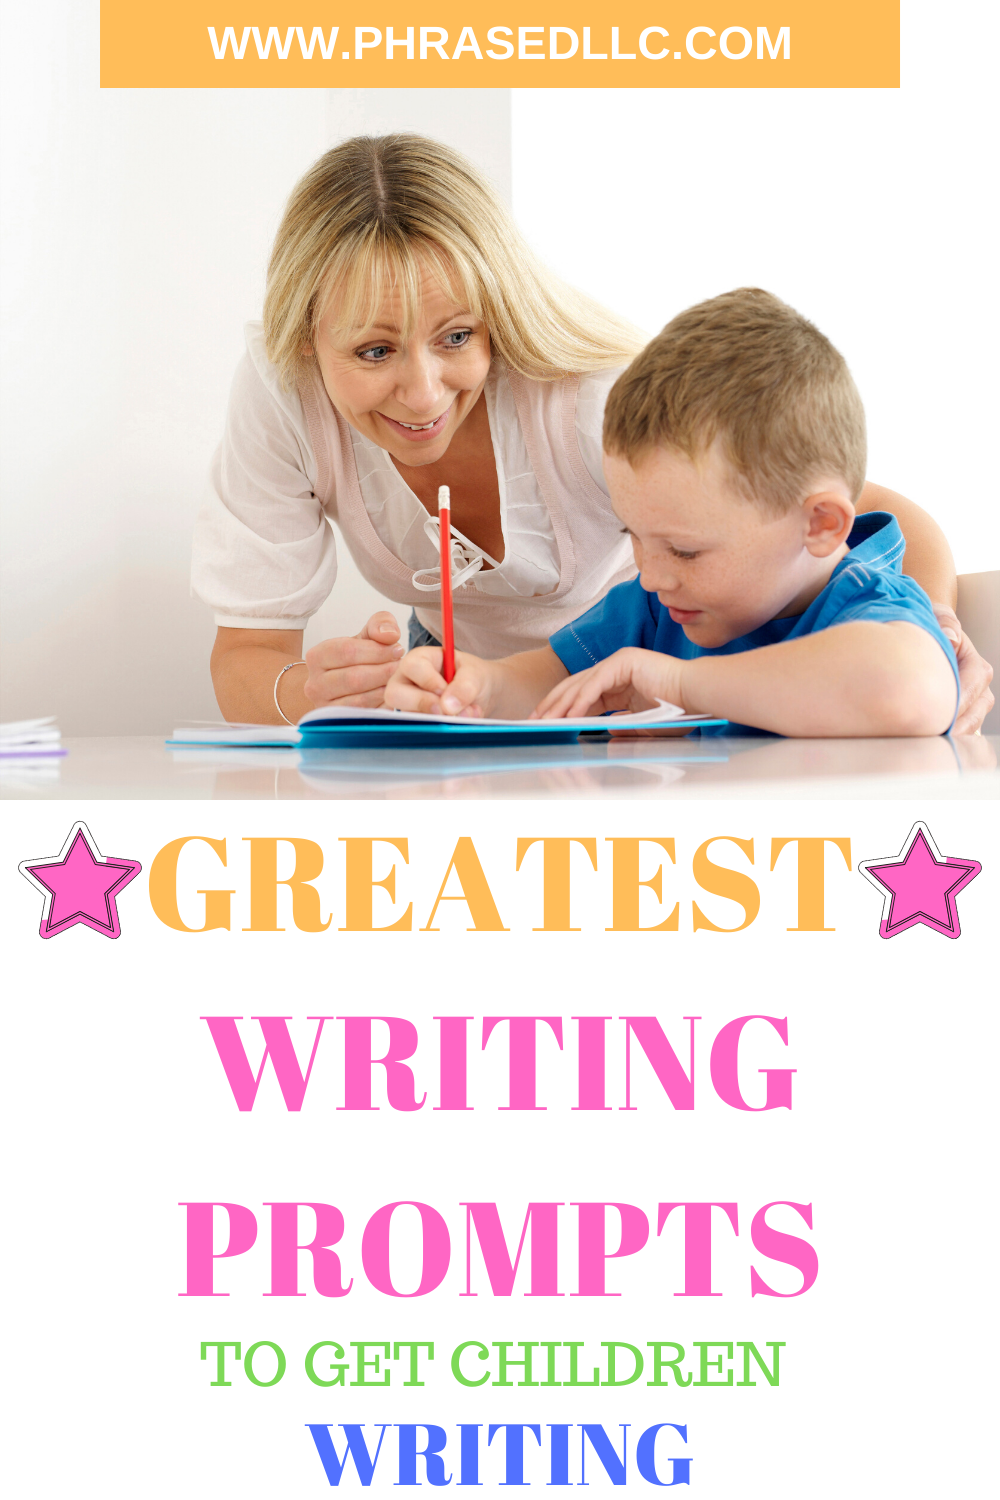 Writing prompts for kids that feature fantasy, fiction, creating writing and funny options for 3rd and 5th grade students.